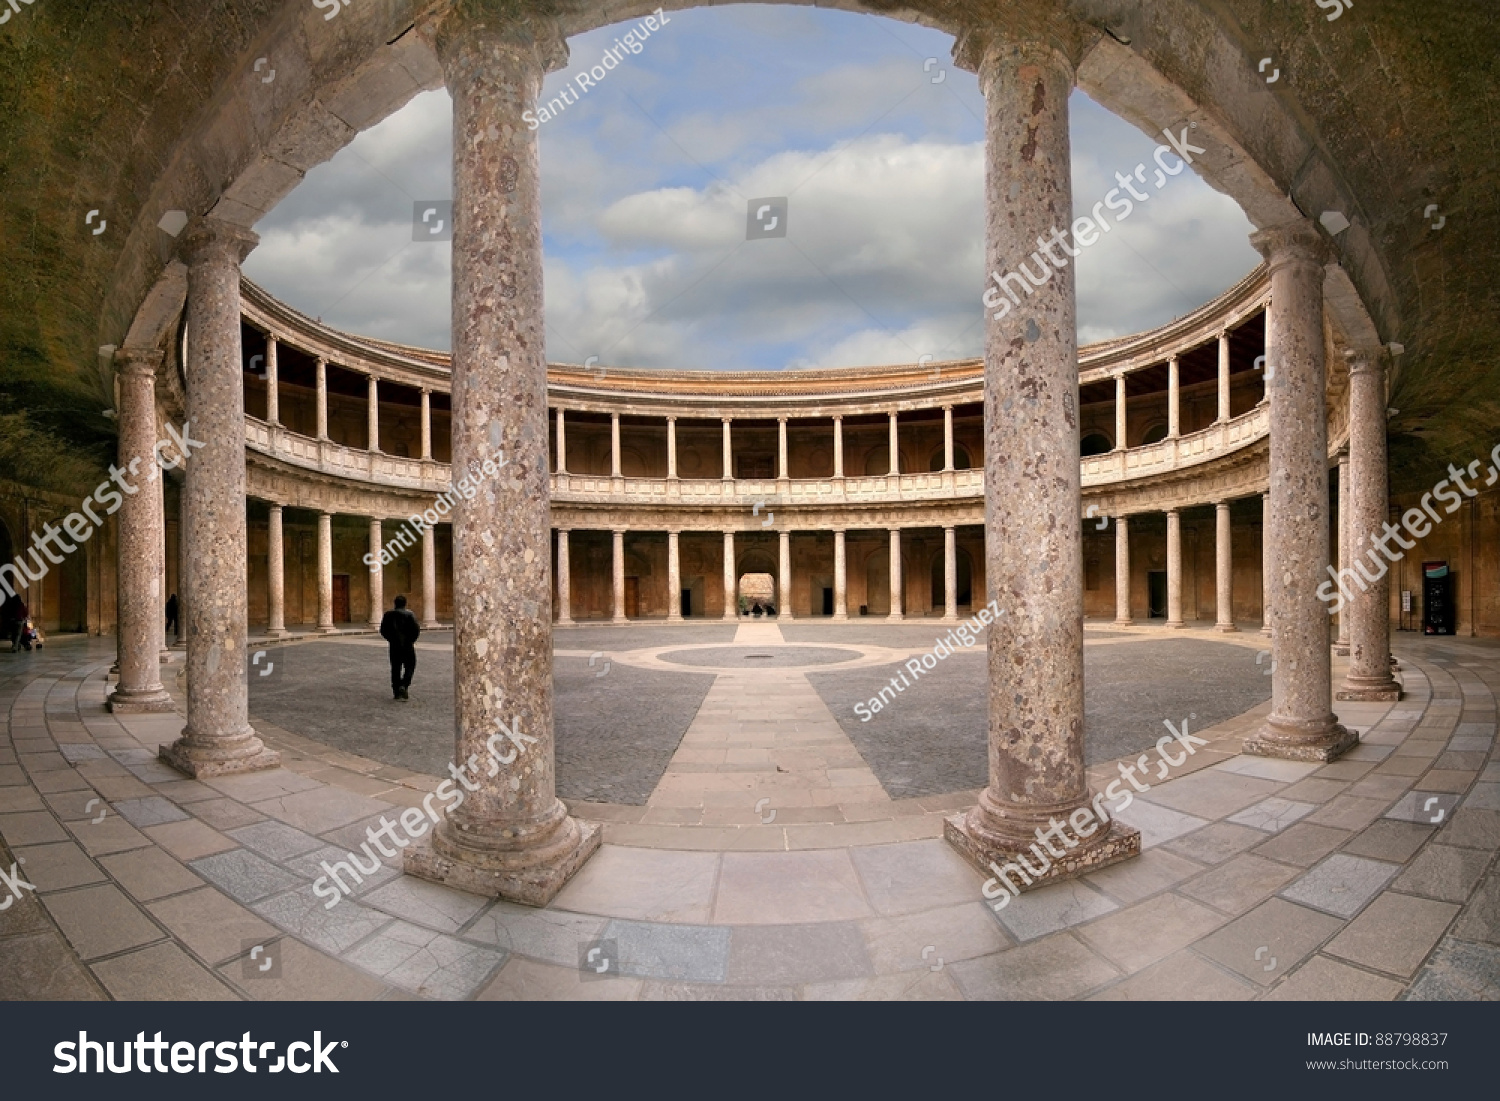 Courtyard Of The Palace Of Charles V (Palacio De Carlos V) In La Alhambra, Gr...